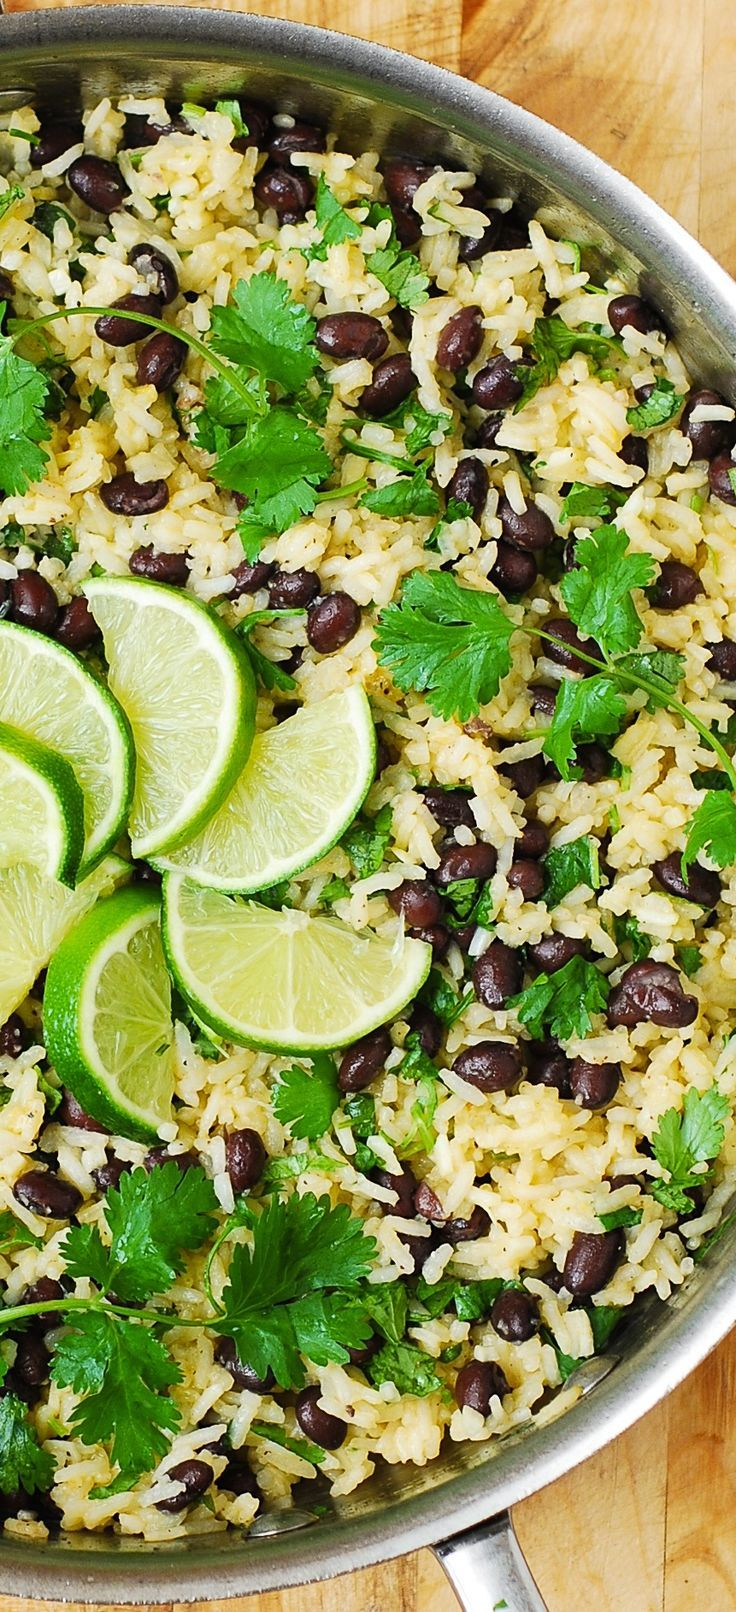 Cilantro-Lime Black Bean Rice - easy, healthy, gluten free side dish. #tacosidedishes